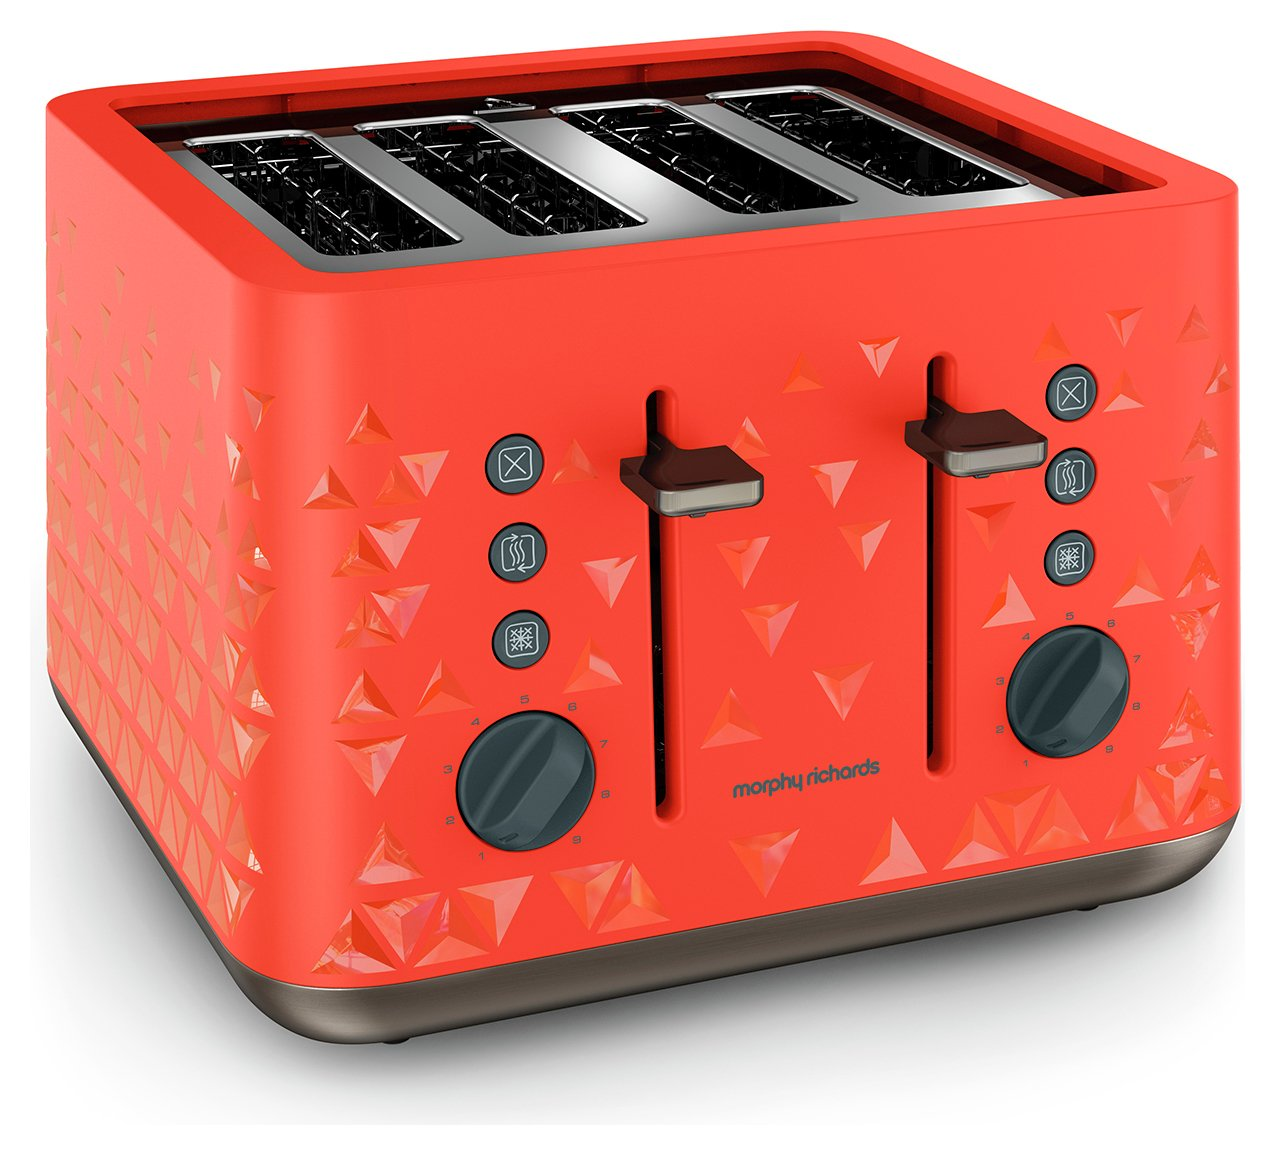 Image of Morphy Richards - Toaster - Prism Toaster - -Orange